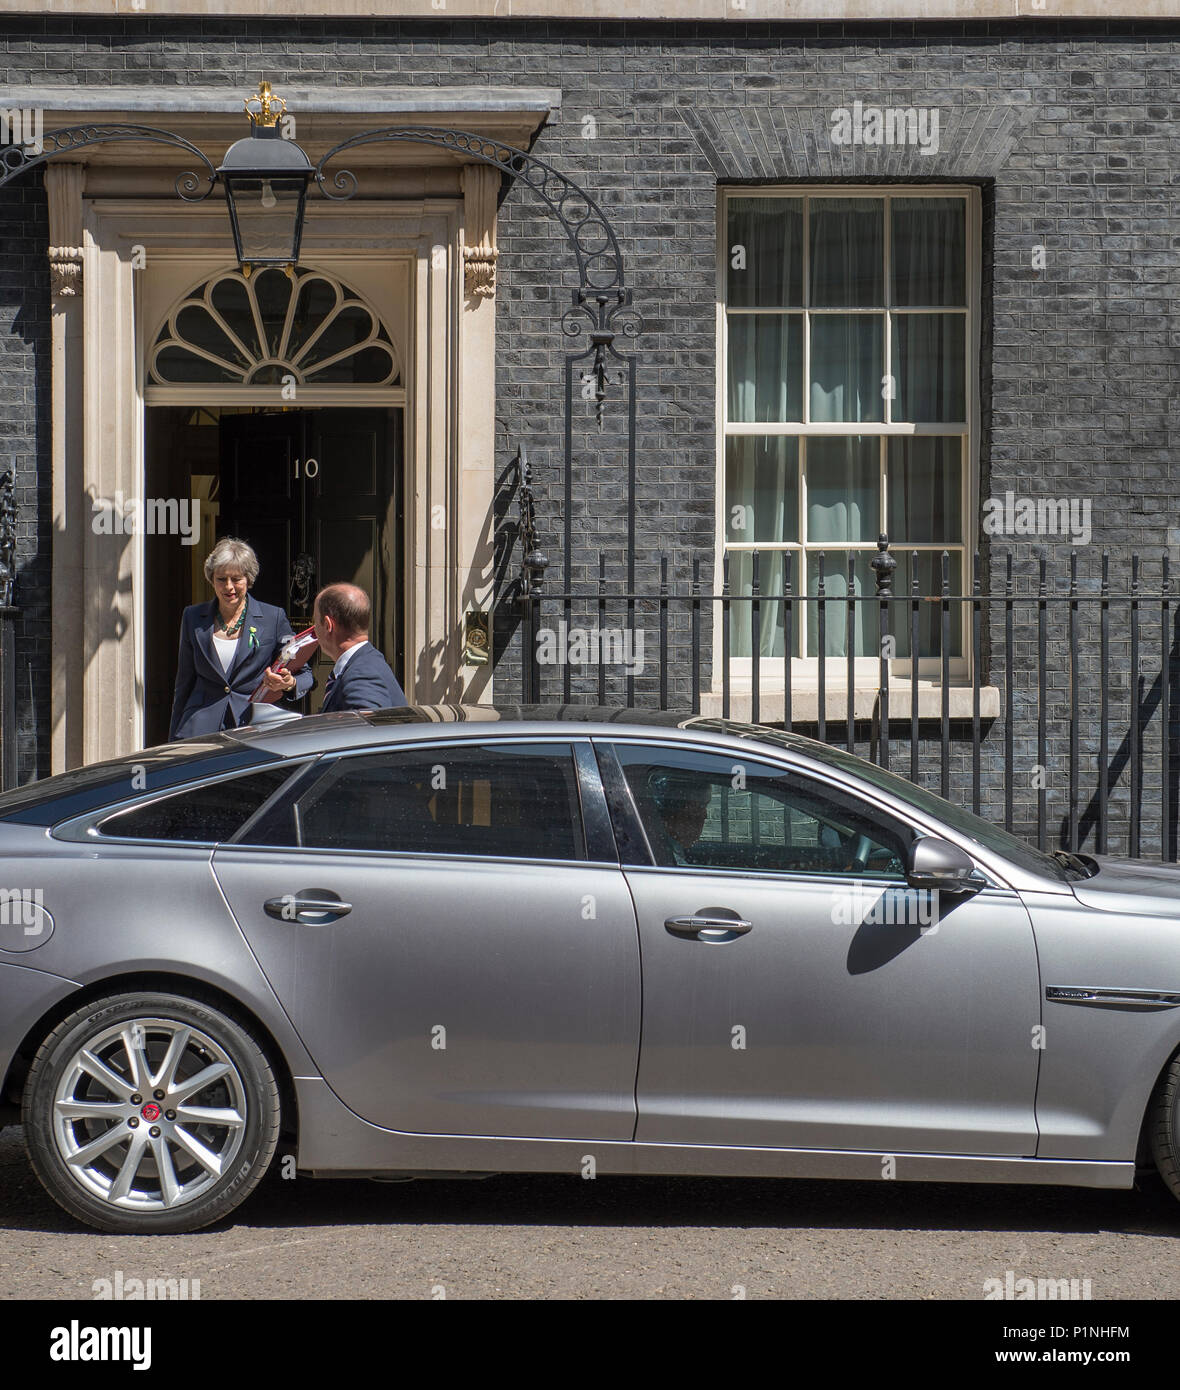 10 Downing Street, London, UK. 13 June, 2018. British Prime Minister Theresa May leaves 10 Downing Street on her way to Parliament attending Prime Minister's Question Time which takes place at 12 noon on Wednesdays. Credit: Malcolm Park/Alamy Live News. - Stock Image